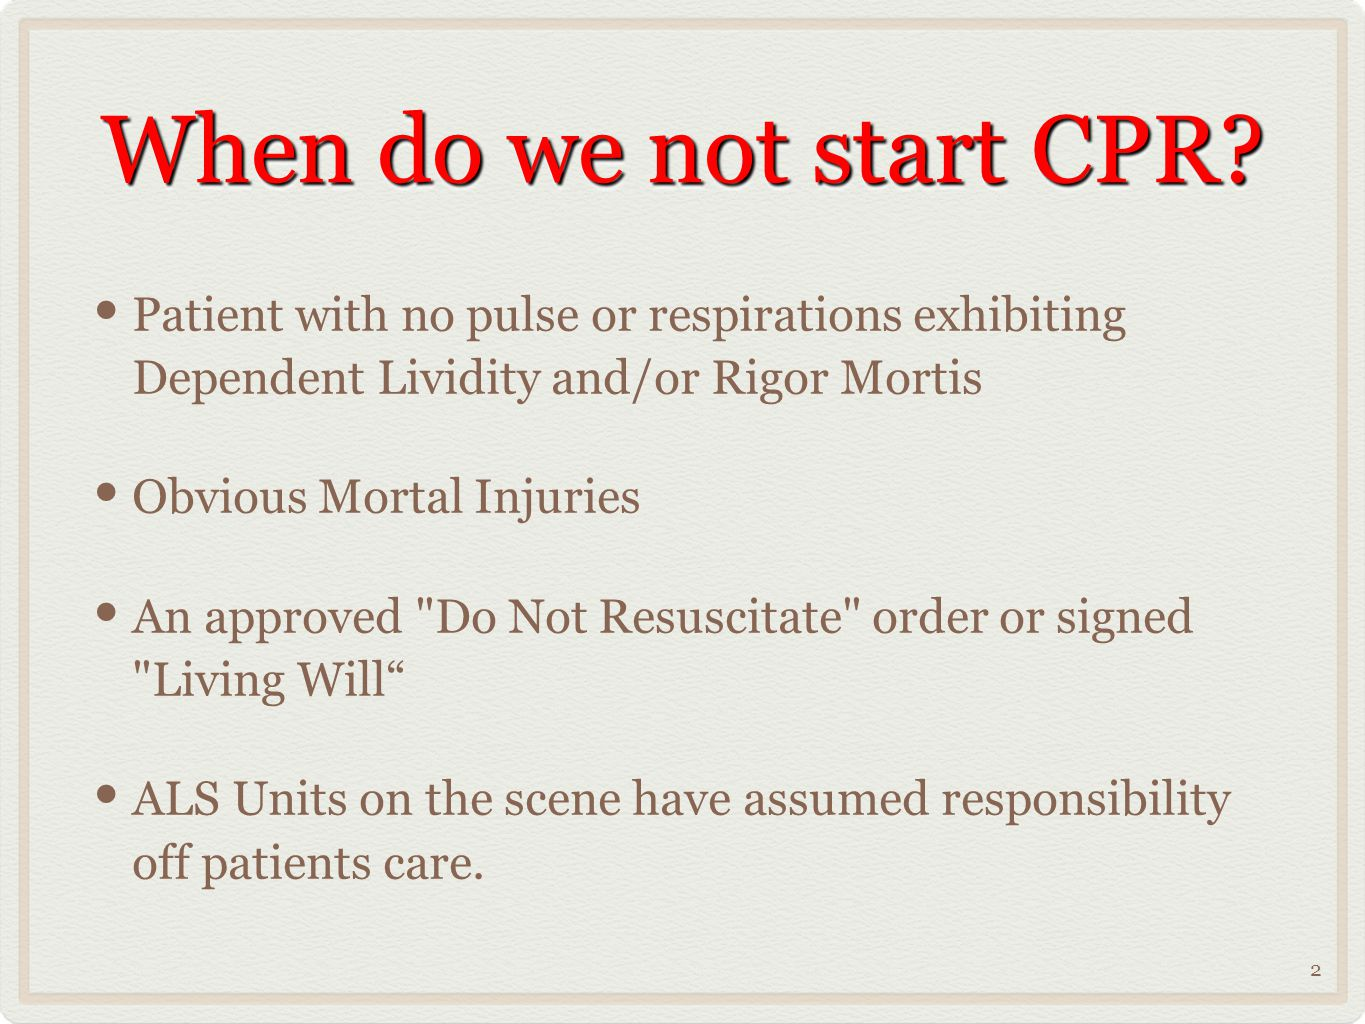 Patient with no pulse or respirations exhibiting Dependent Lividity and/or Rigor Mortis 3